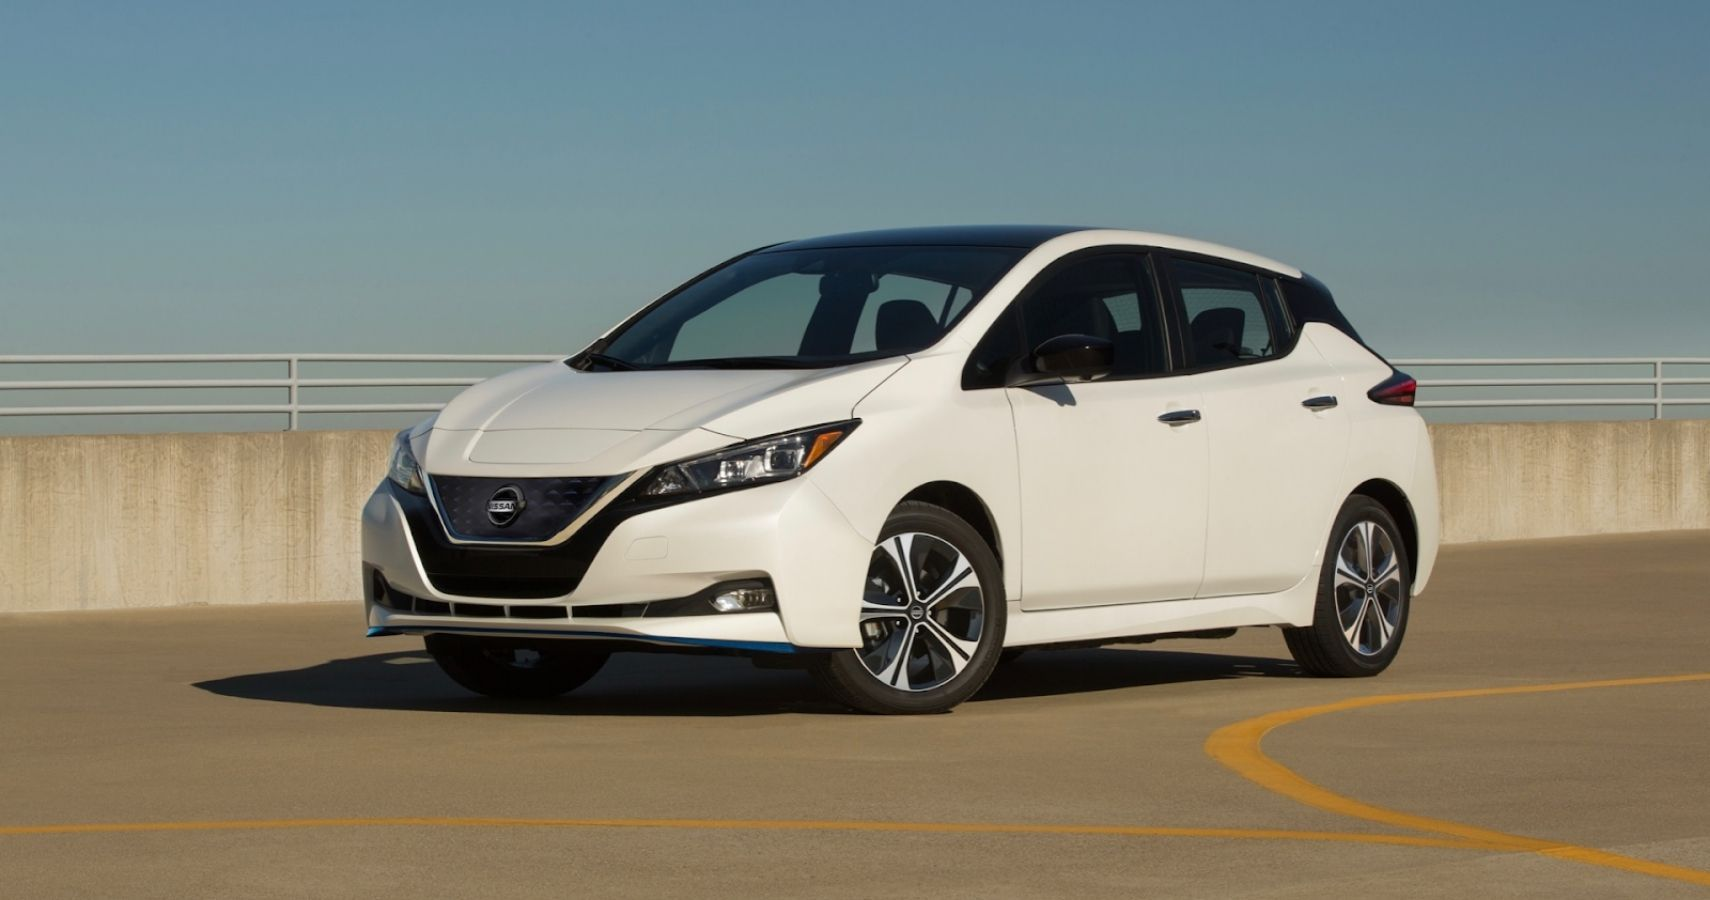 This Is The Coolest Feature Of The Nissan Leaf Interior | HotCars